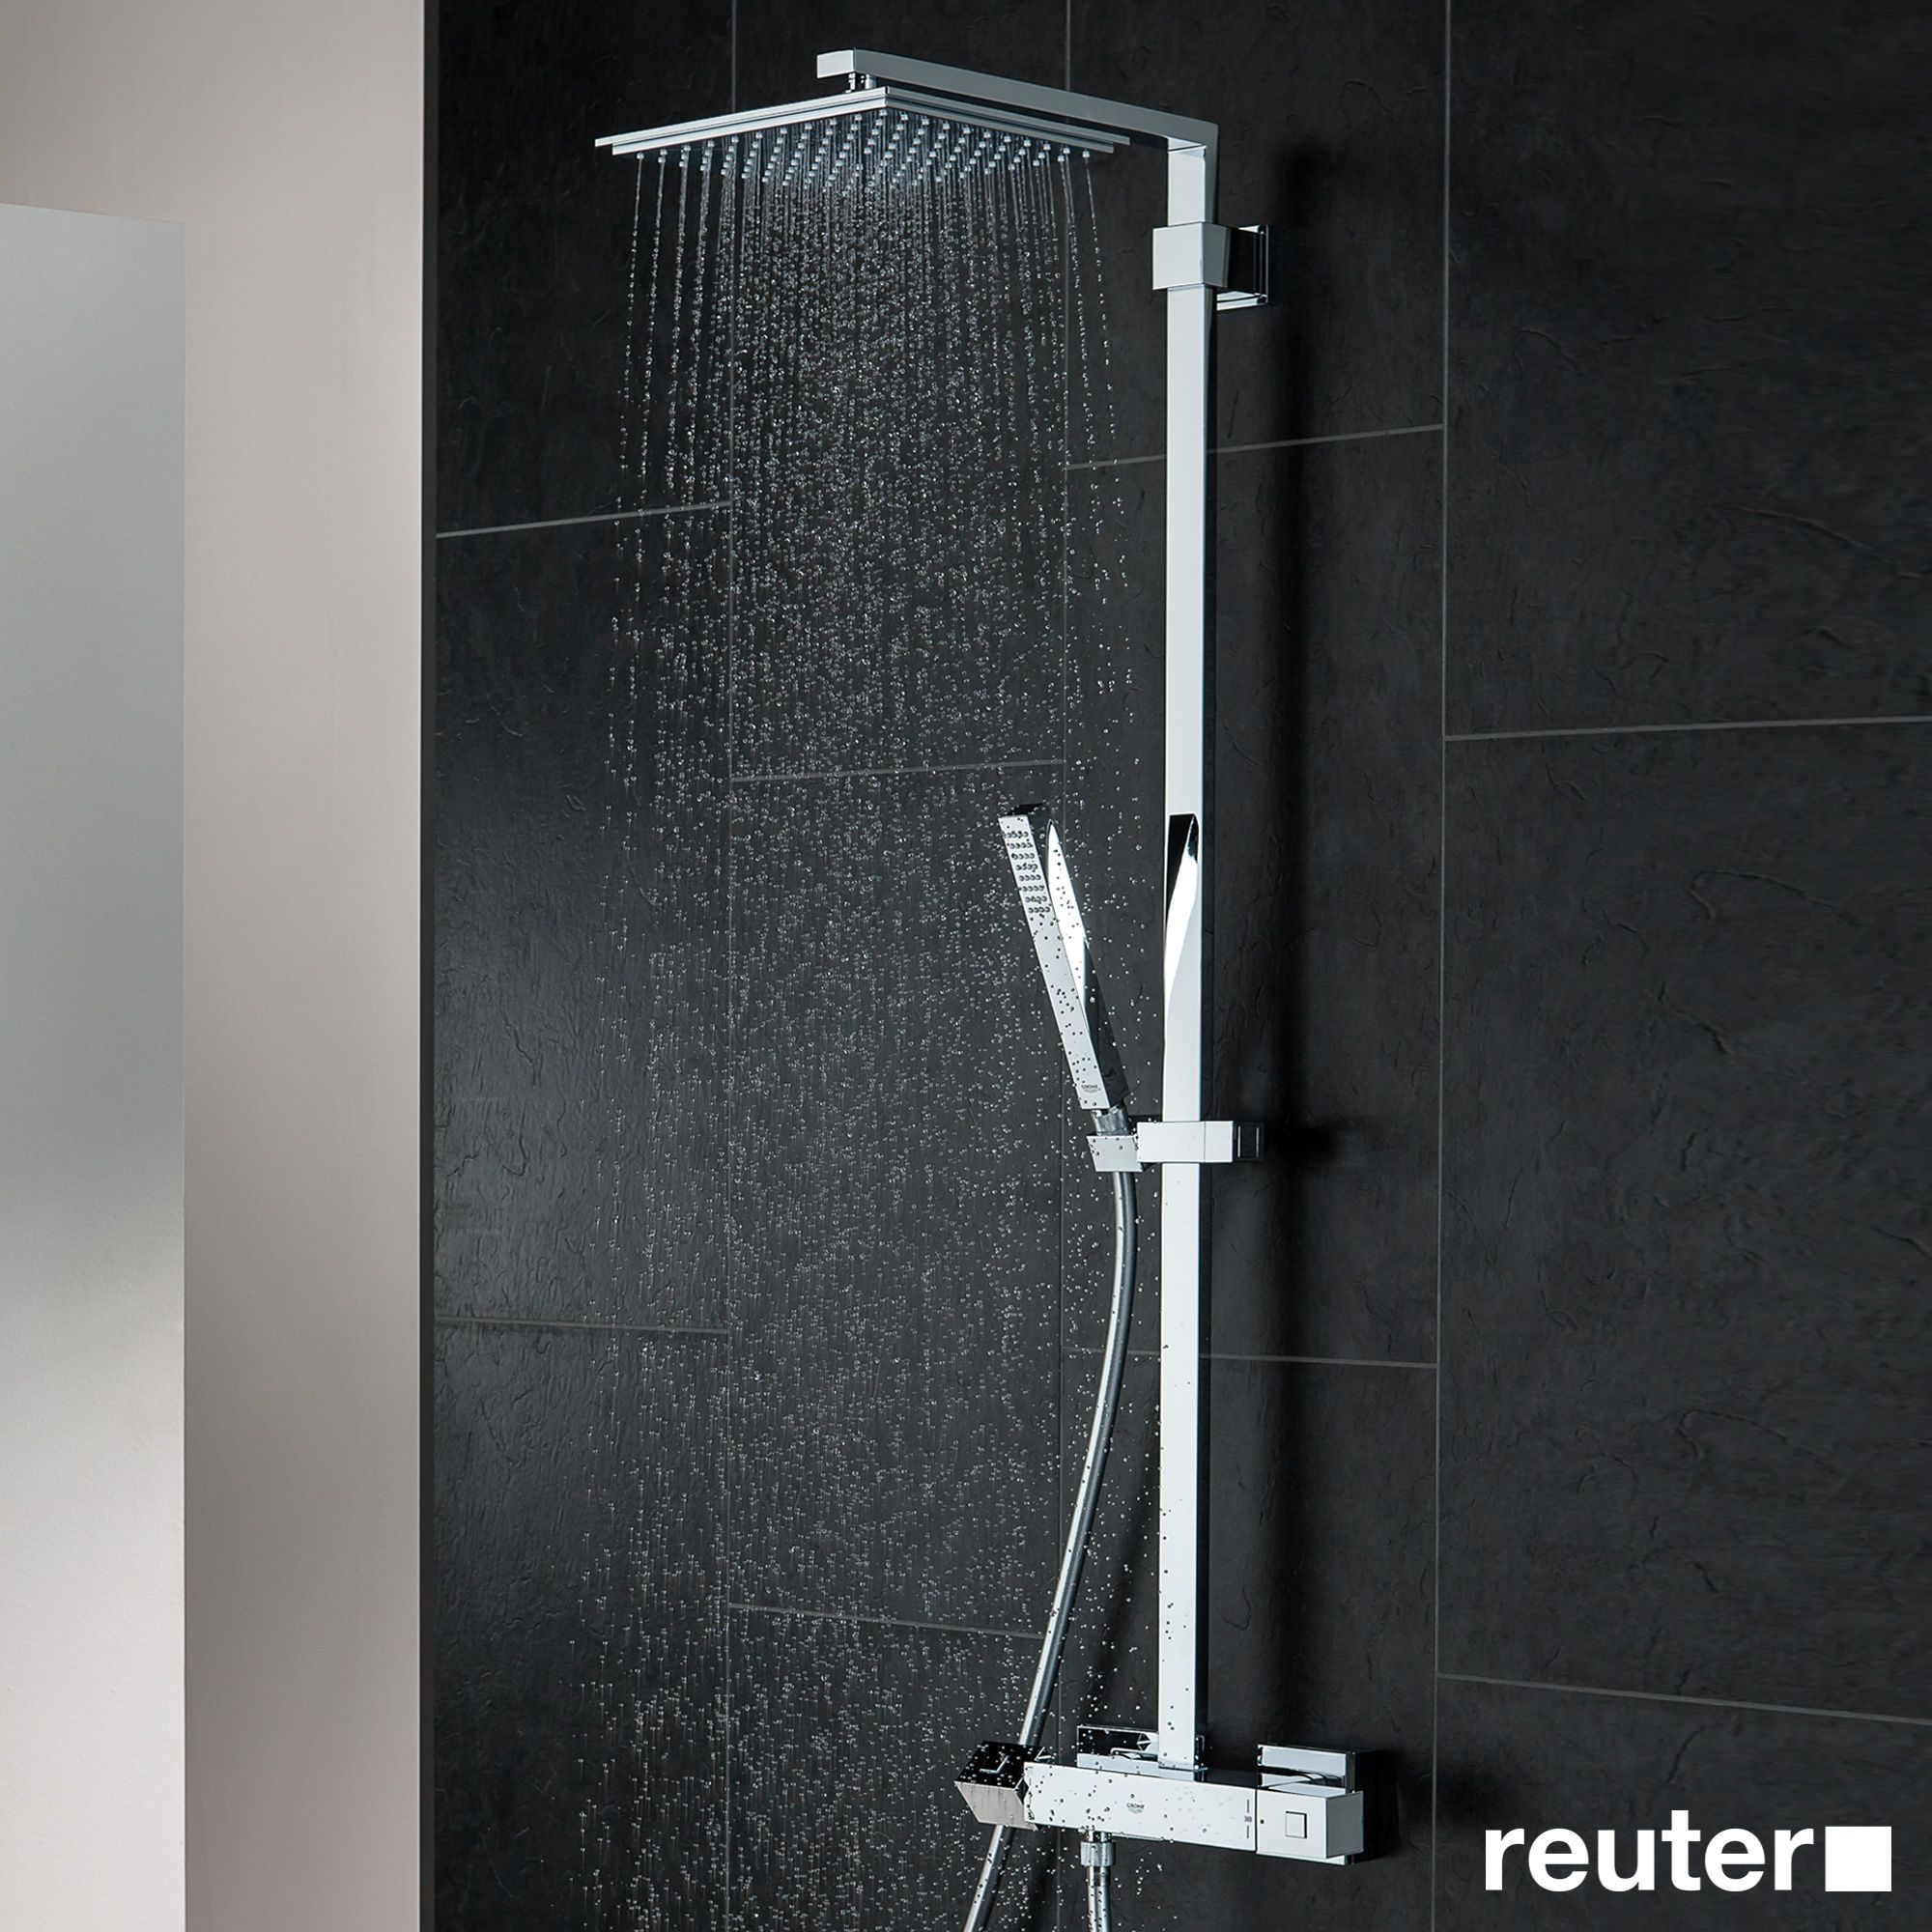 xxl du douche system euphoria grohe produit de shower photo colonne